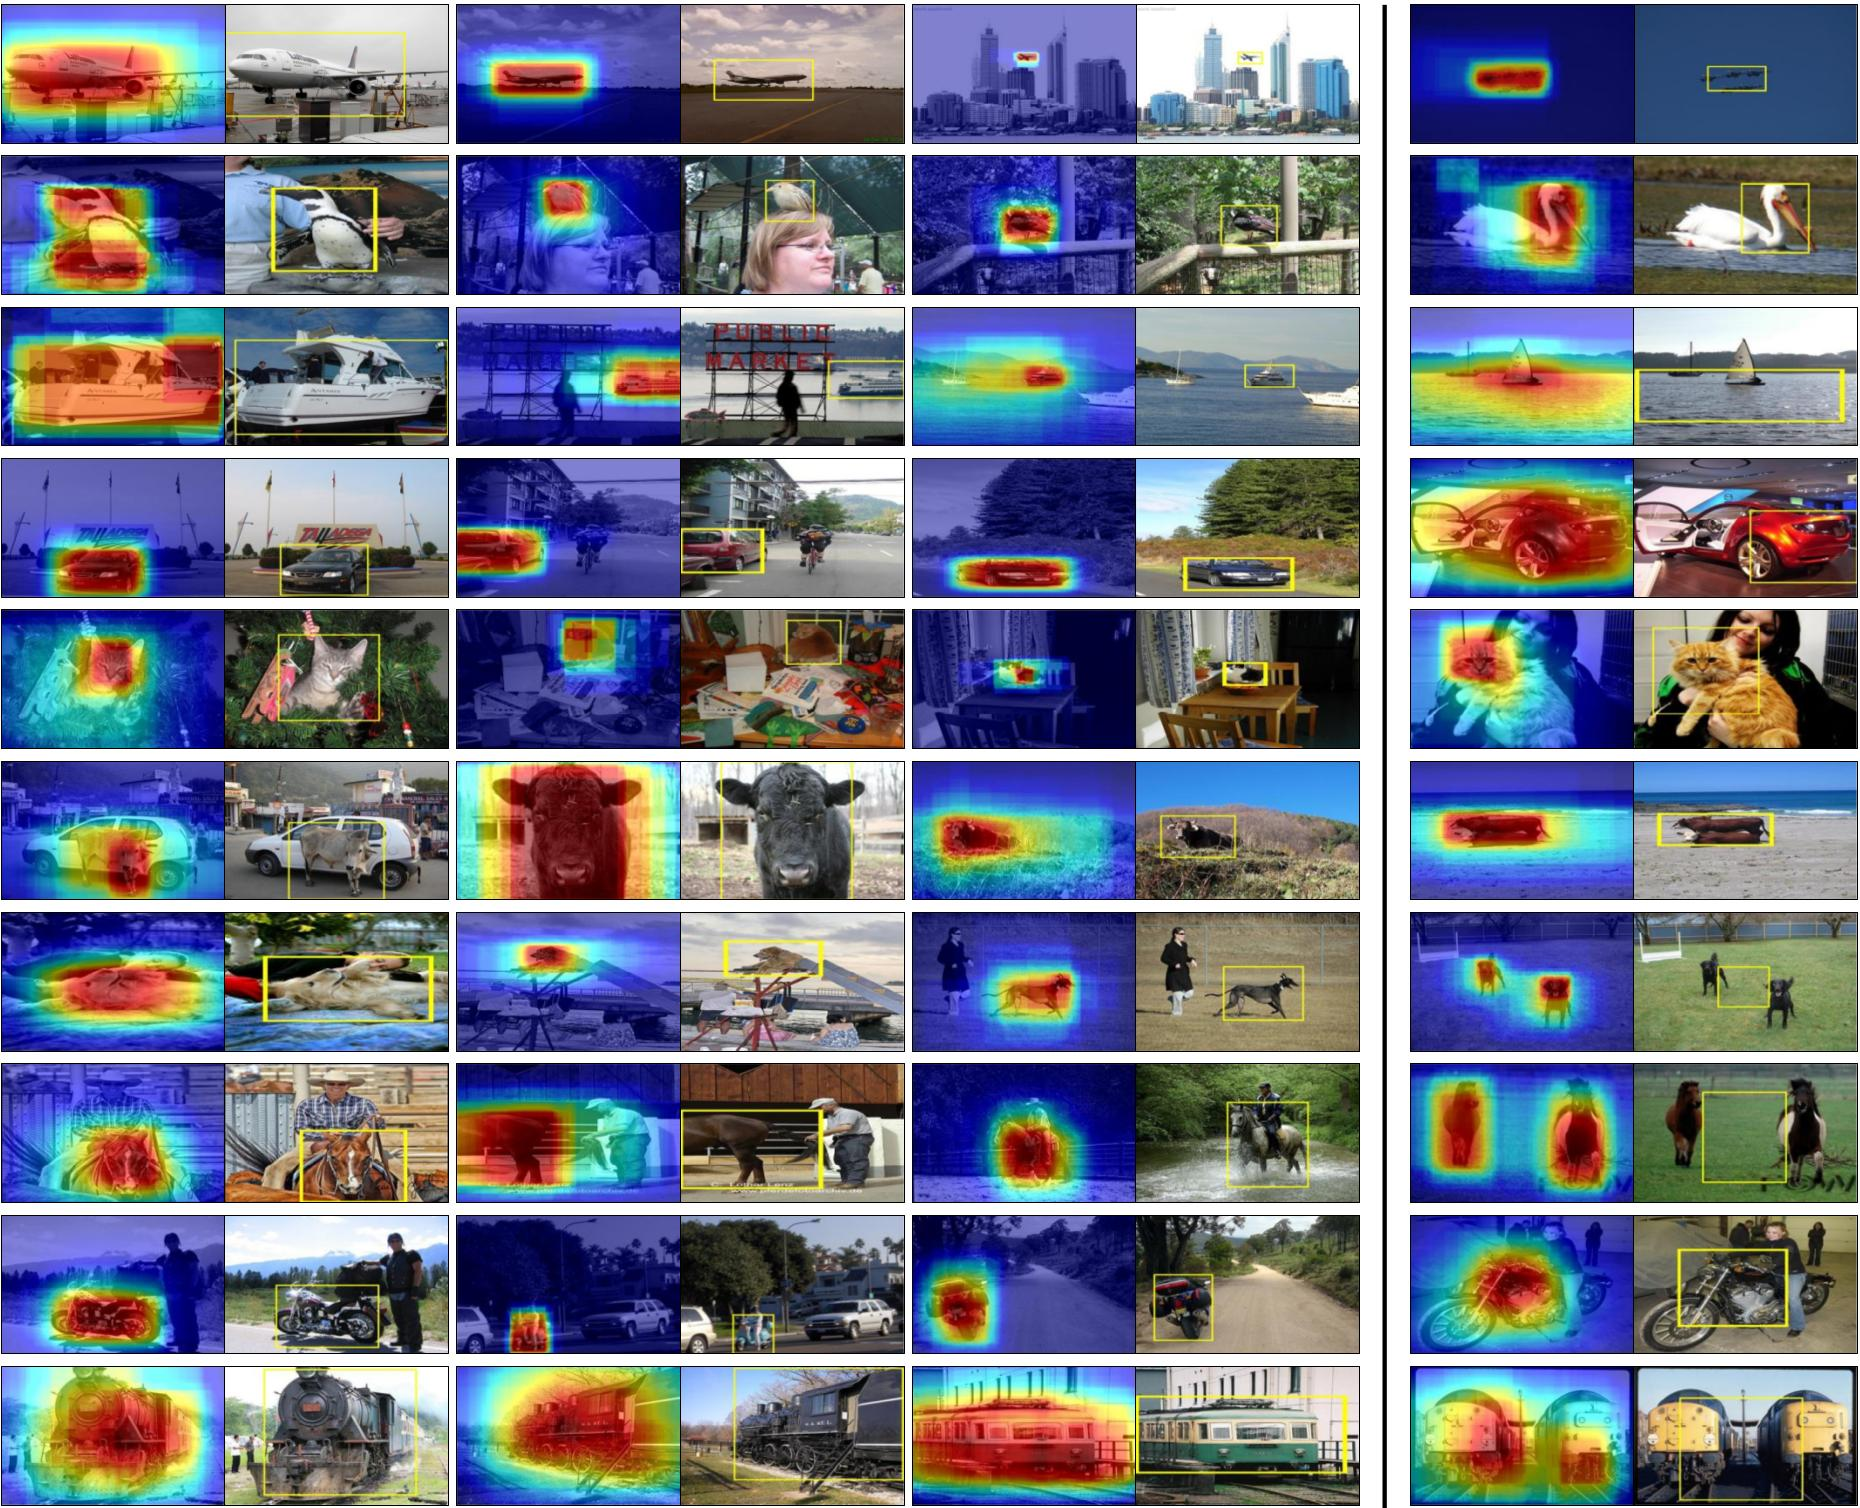 Track and Transfer: Watching Videos to Simulate Strong Human